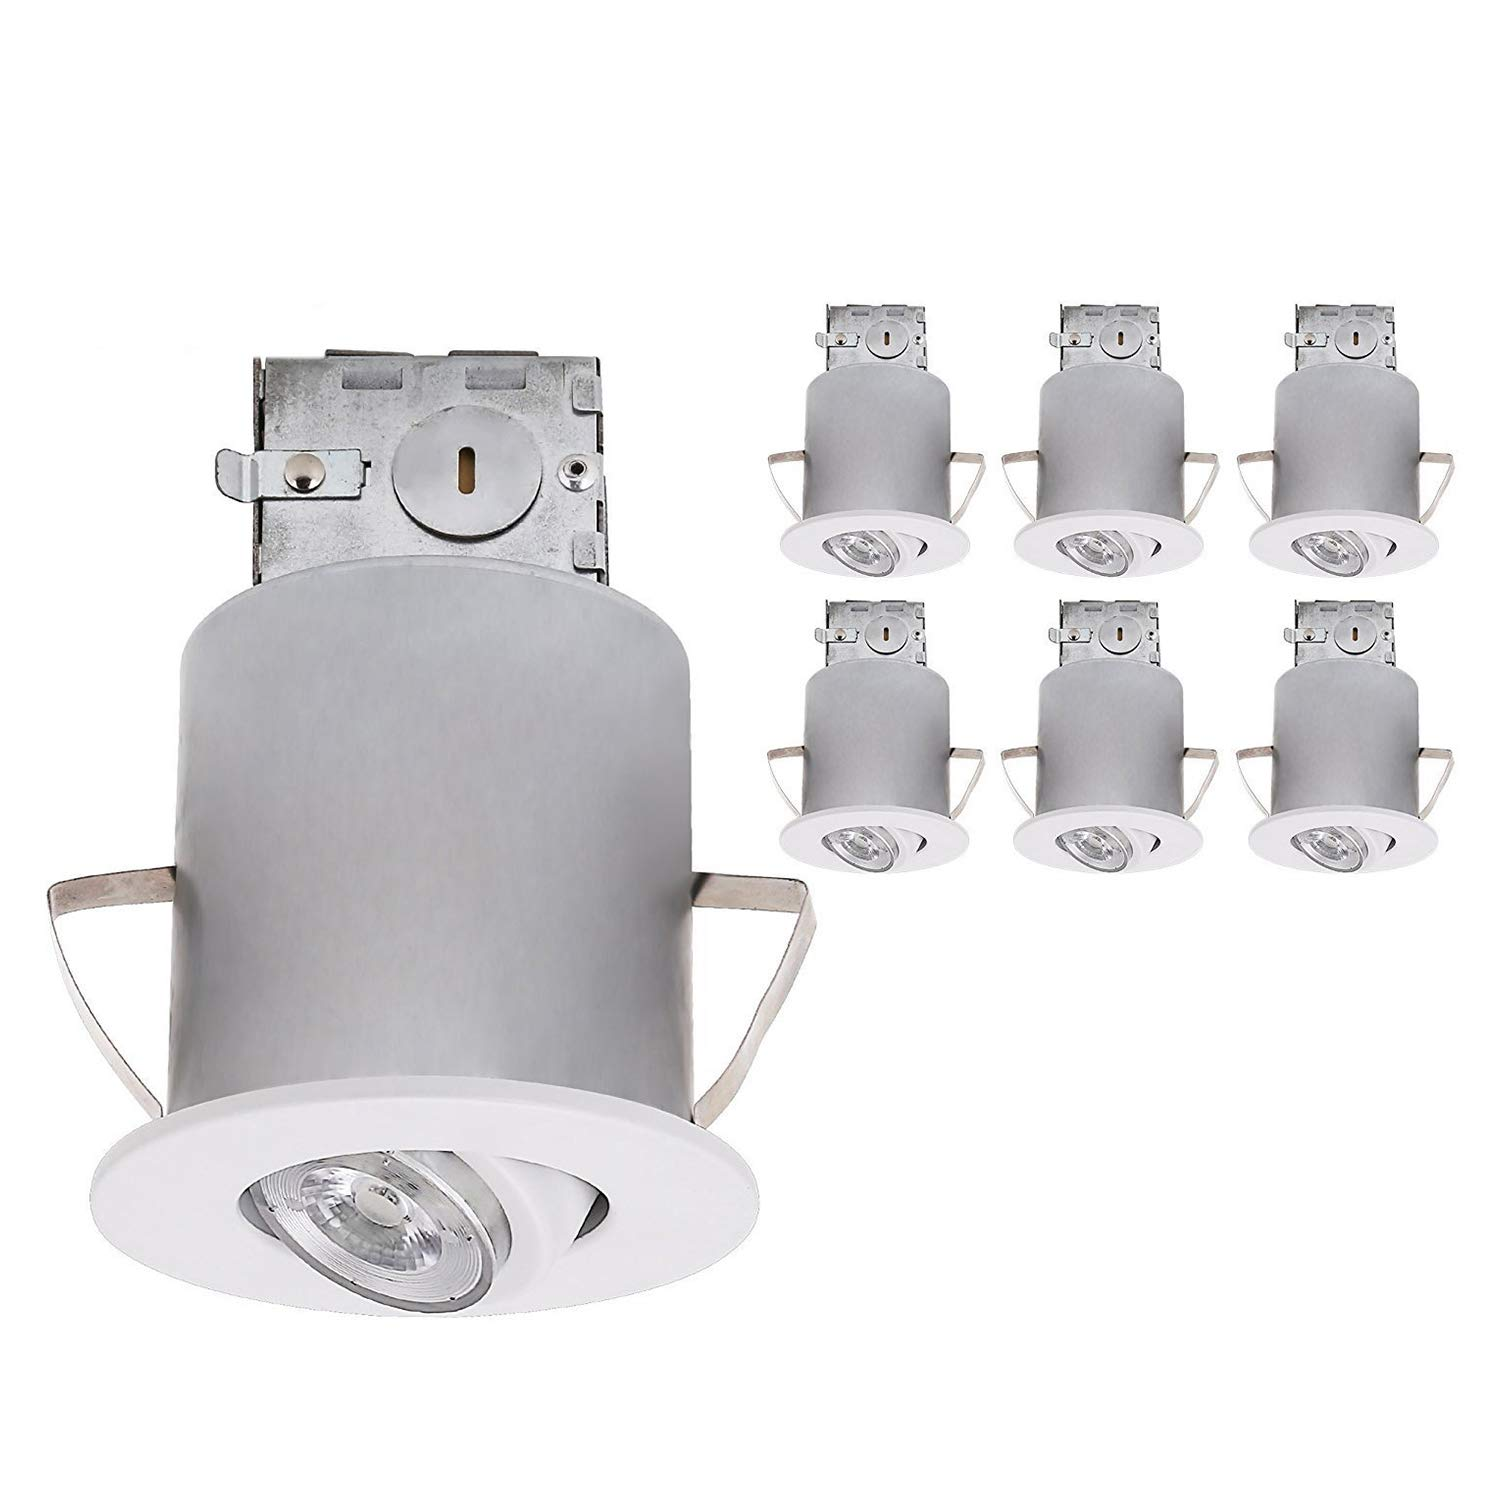 TORCHSTAR Recessed Lighting Kit: 3-Inch ETL-listed Airtight IC Housing + White Swivel Trim + LED Dimmable GU10 Light Bulb Warm White, Rotatable Spotlight, Decorative Retrofit Downlight, Pack of 6